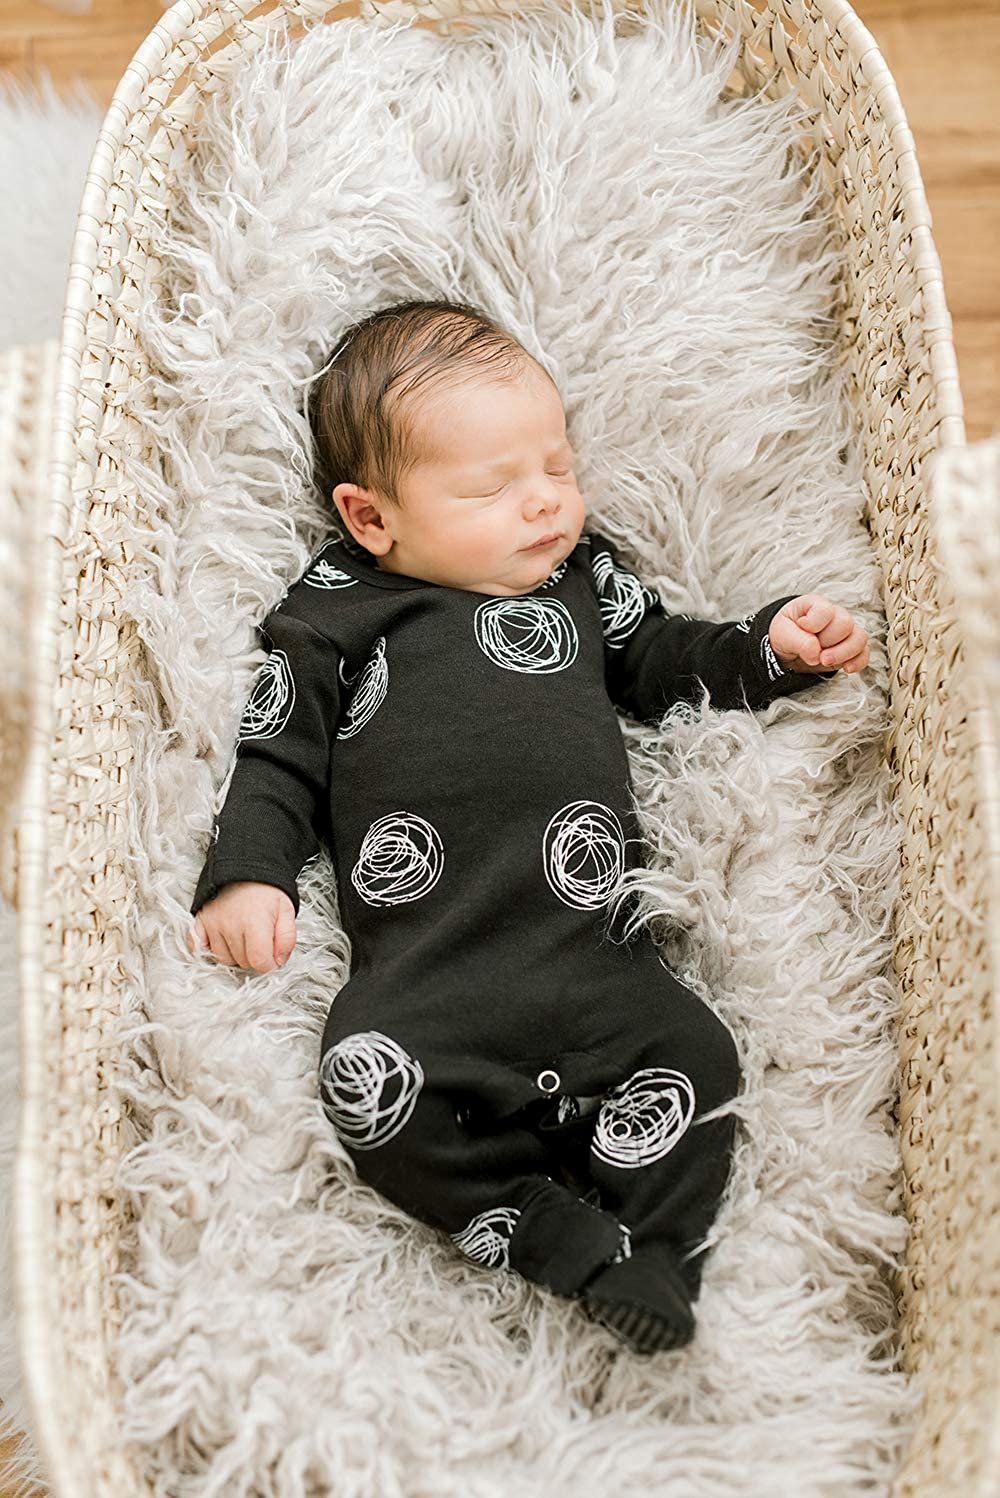 Lovedbaby Organic Baby Footie Graphic Back-Snapped Footed Overall